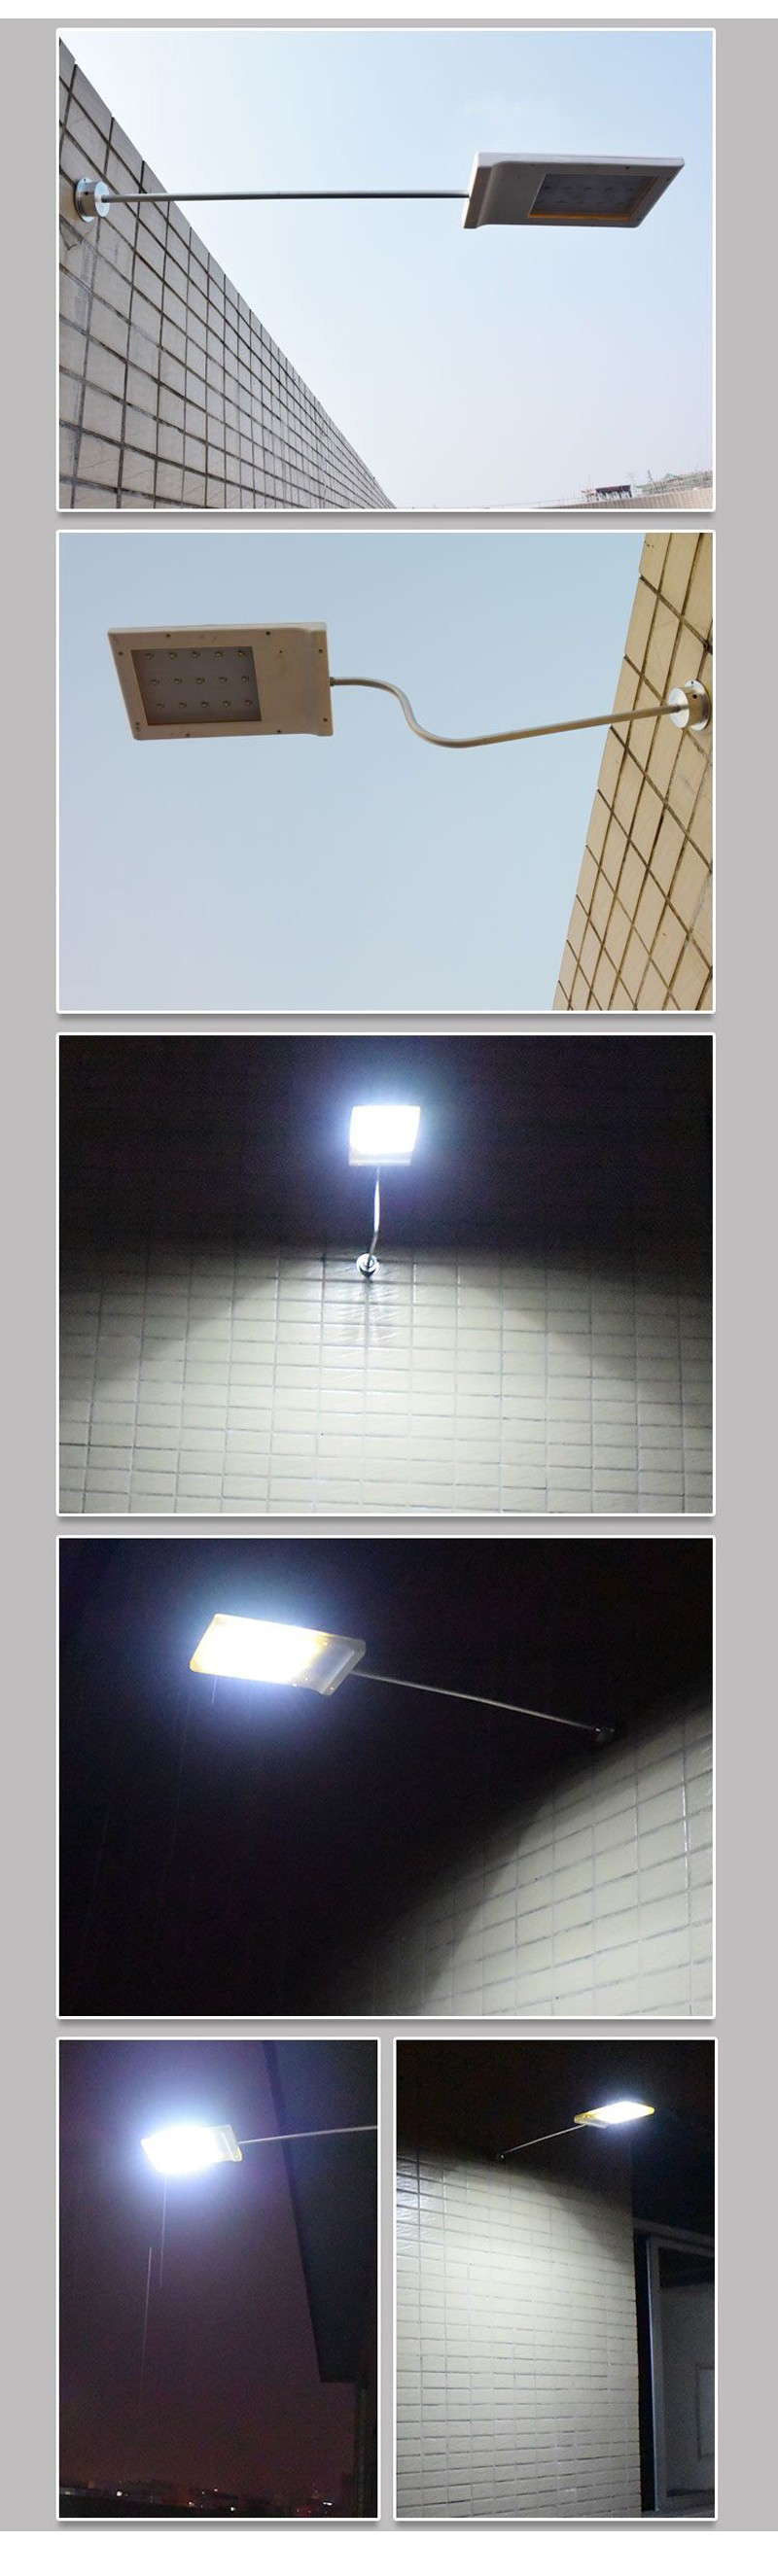 15 LED Street Lights Price Cheaper outdoor Lamp Solar Control Remote Path Wall Emergency Lamp ...